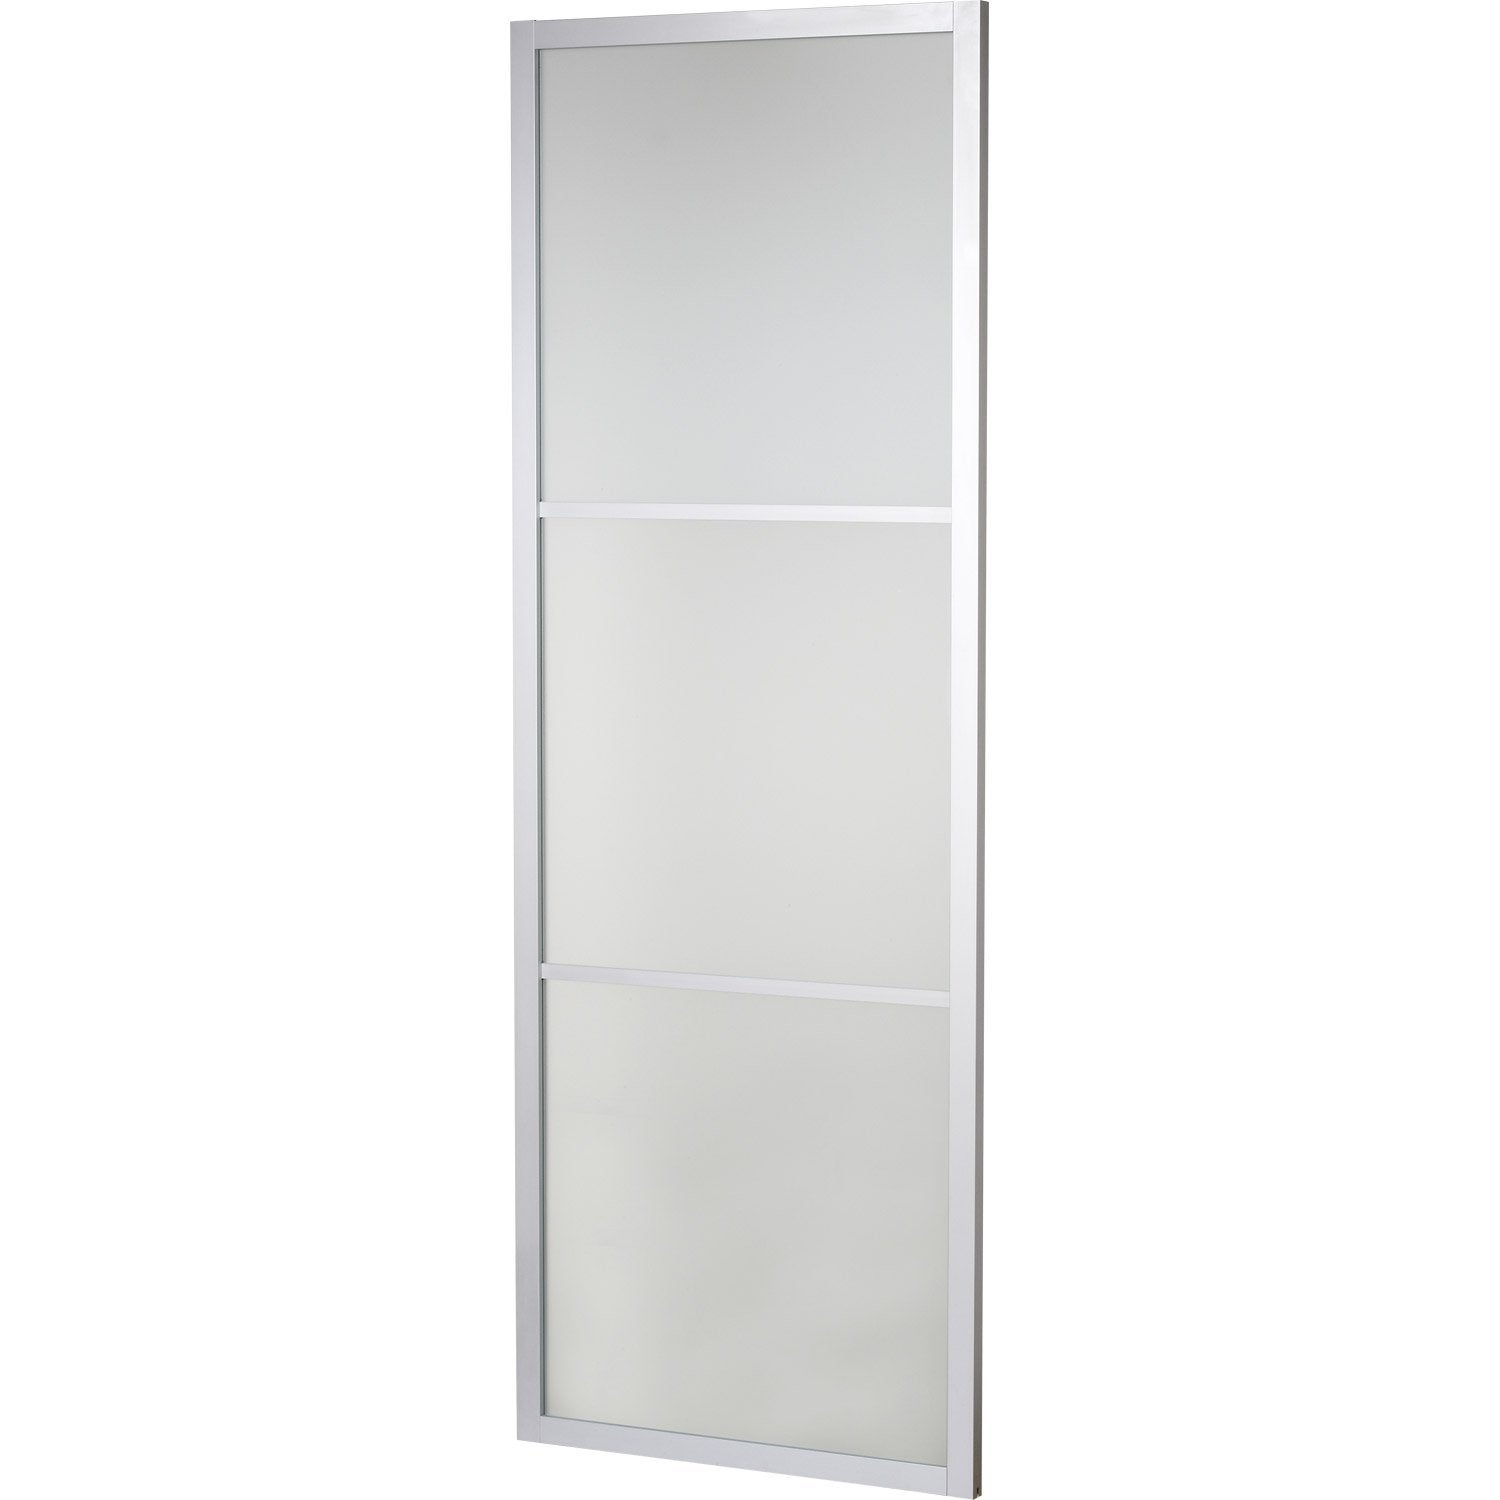 Porte coulissante verre tremp aspen artens 204 x 73 cm for Porte interieure en 63 cm